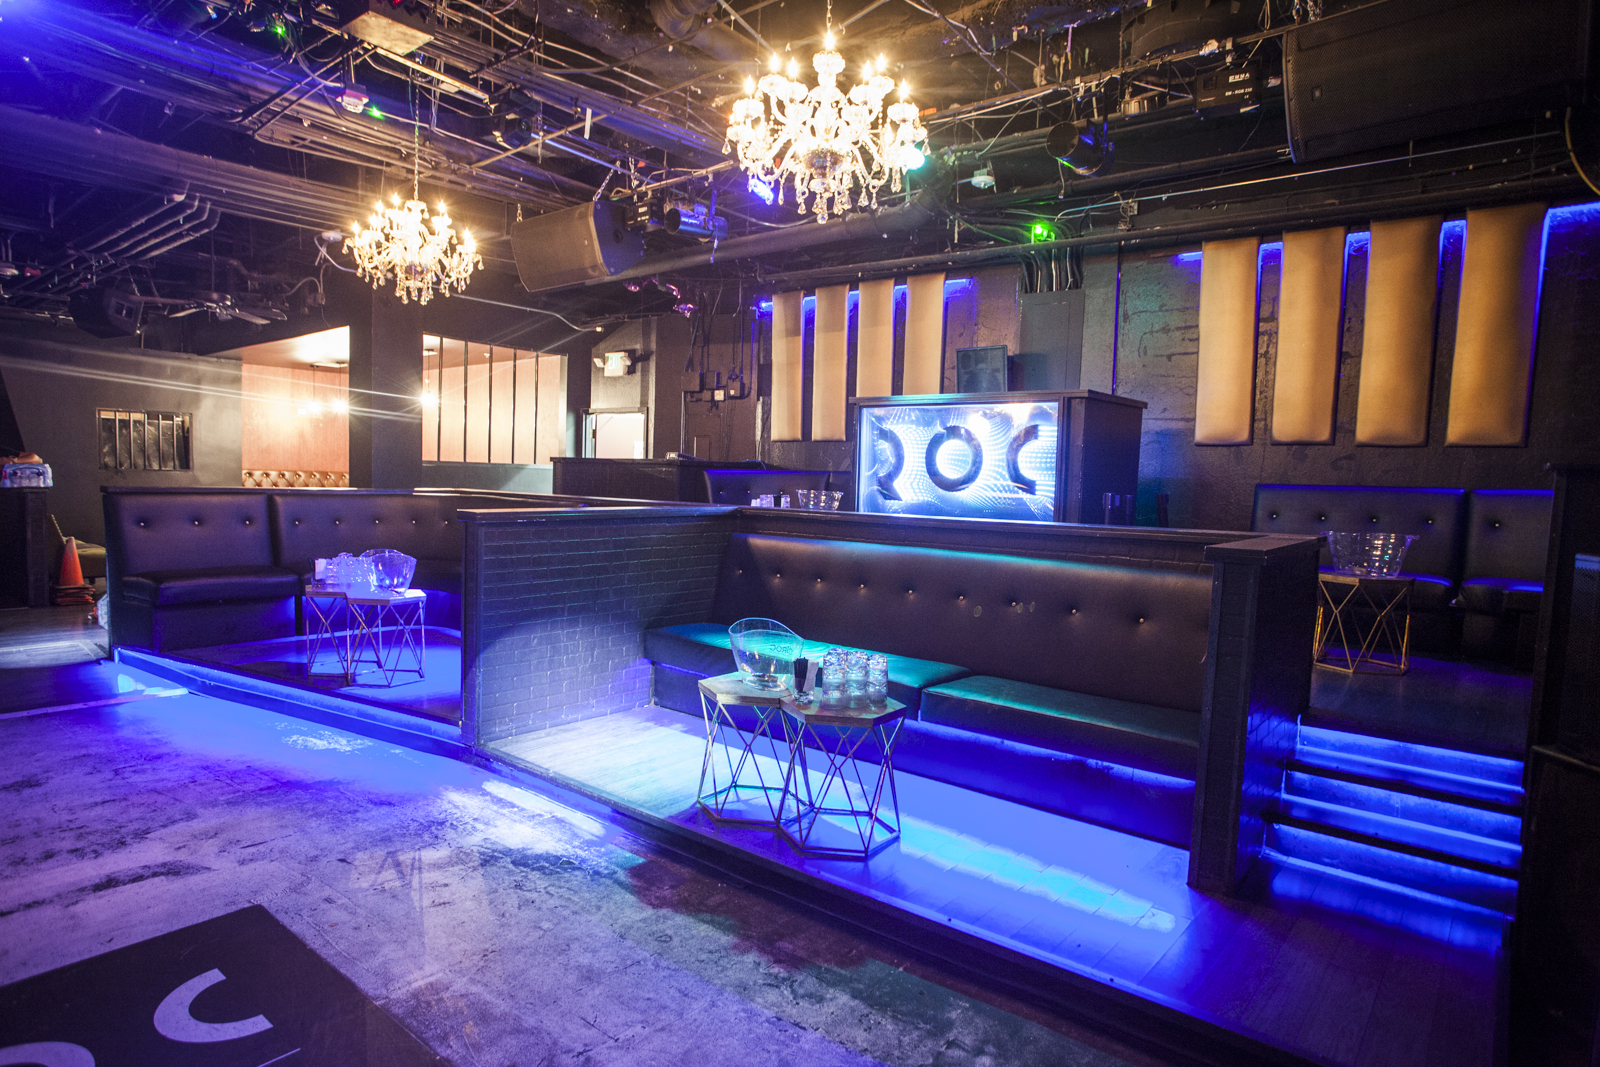 The Club Level  event space at The Roc Bar & Nightclub  in SF